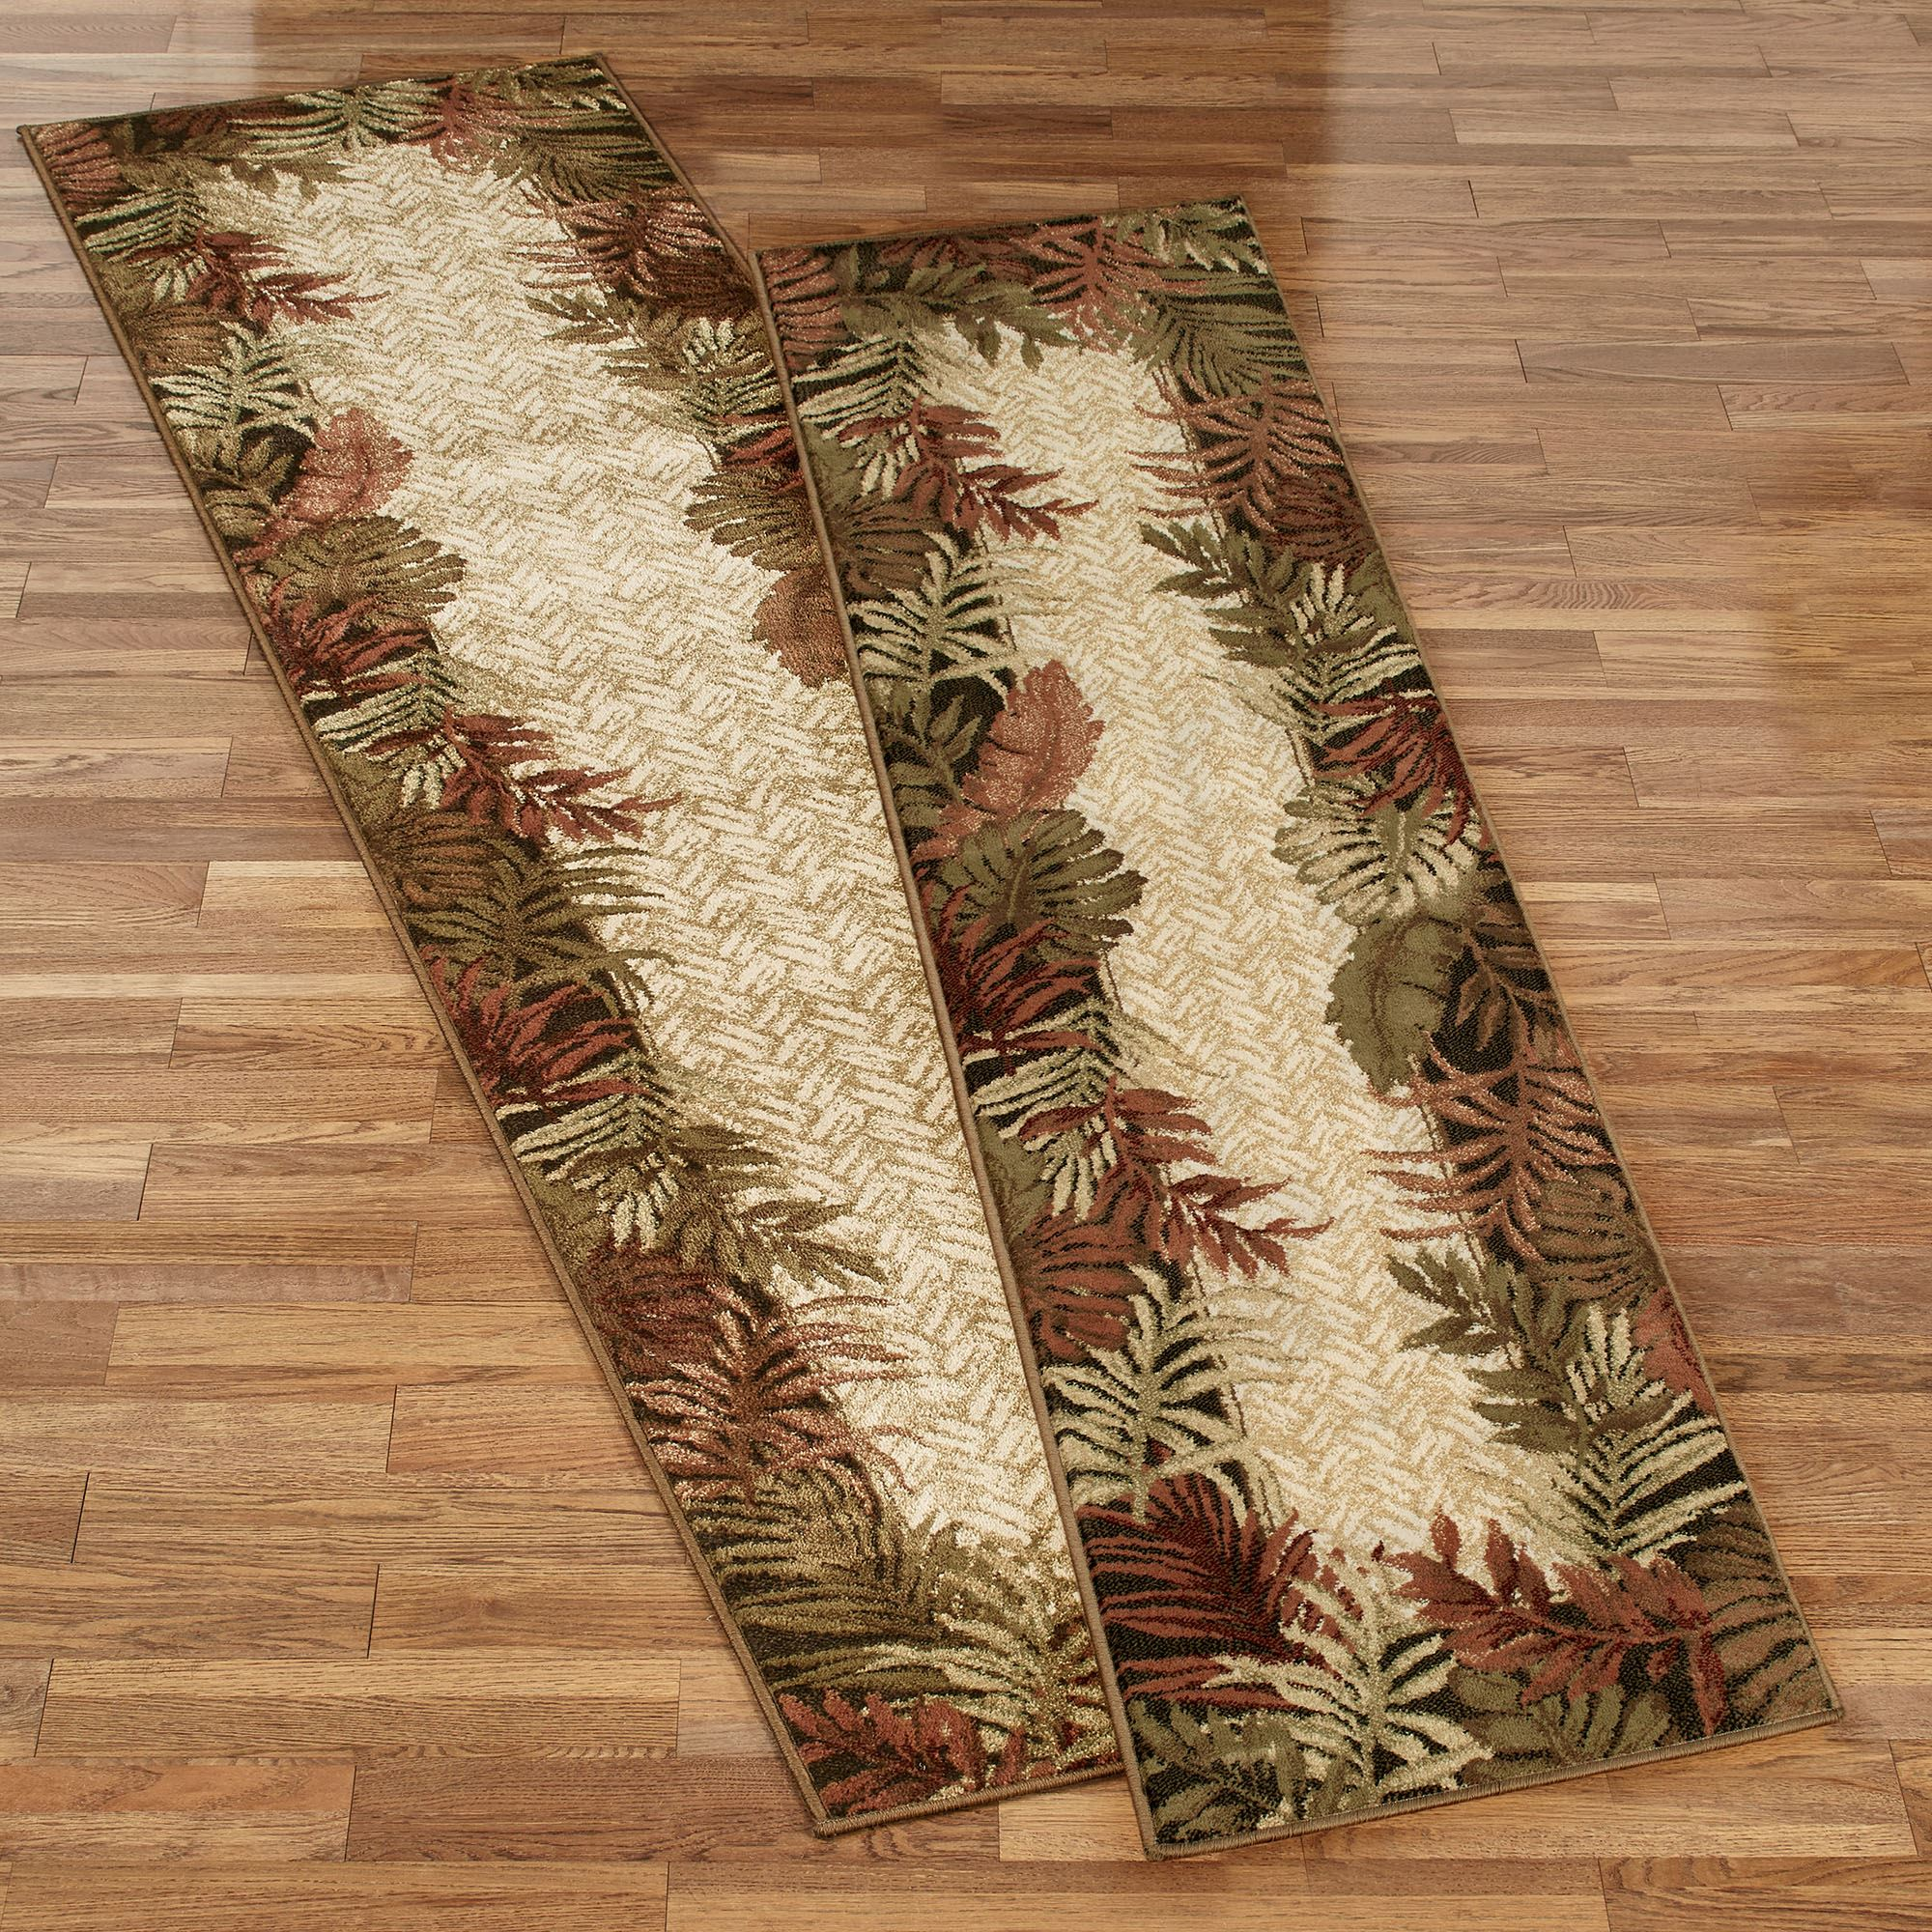 australia pioneerproduceofnorthpole india rug stockcom rugs com mat mats singapore sale uk straw s